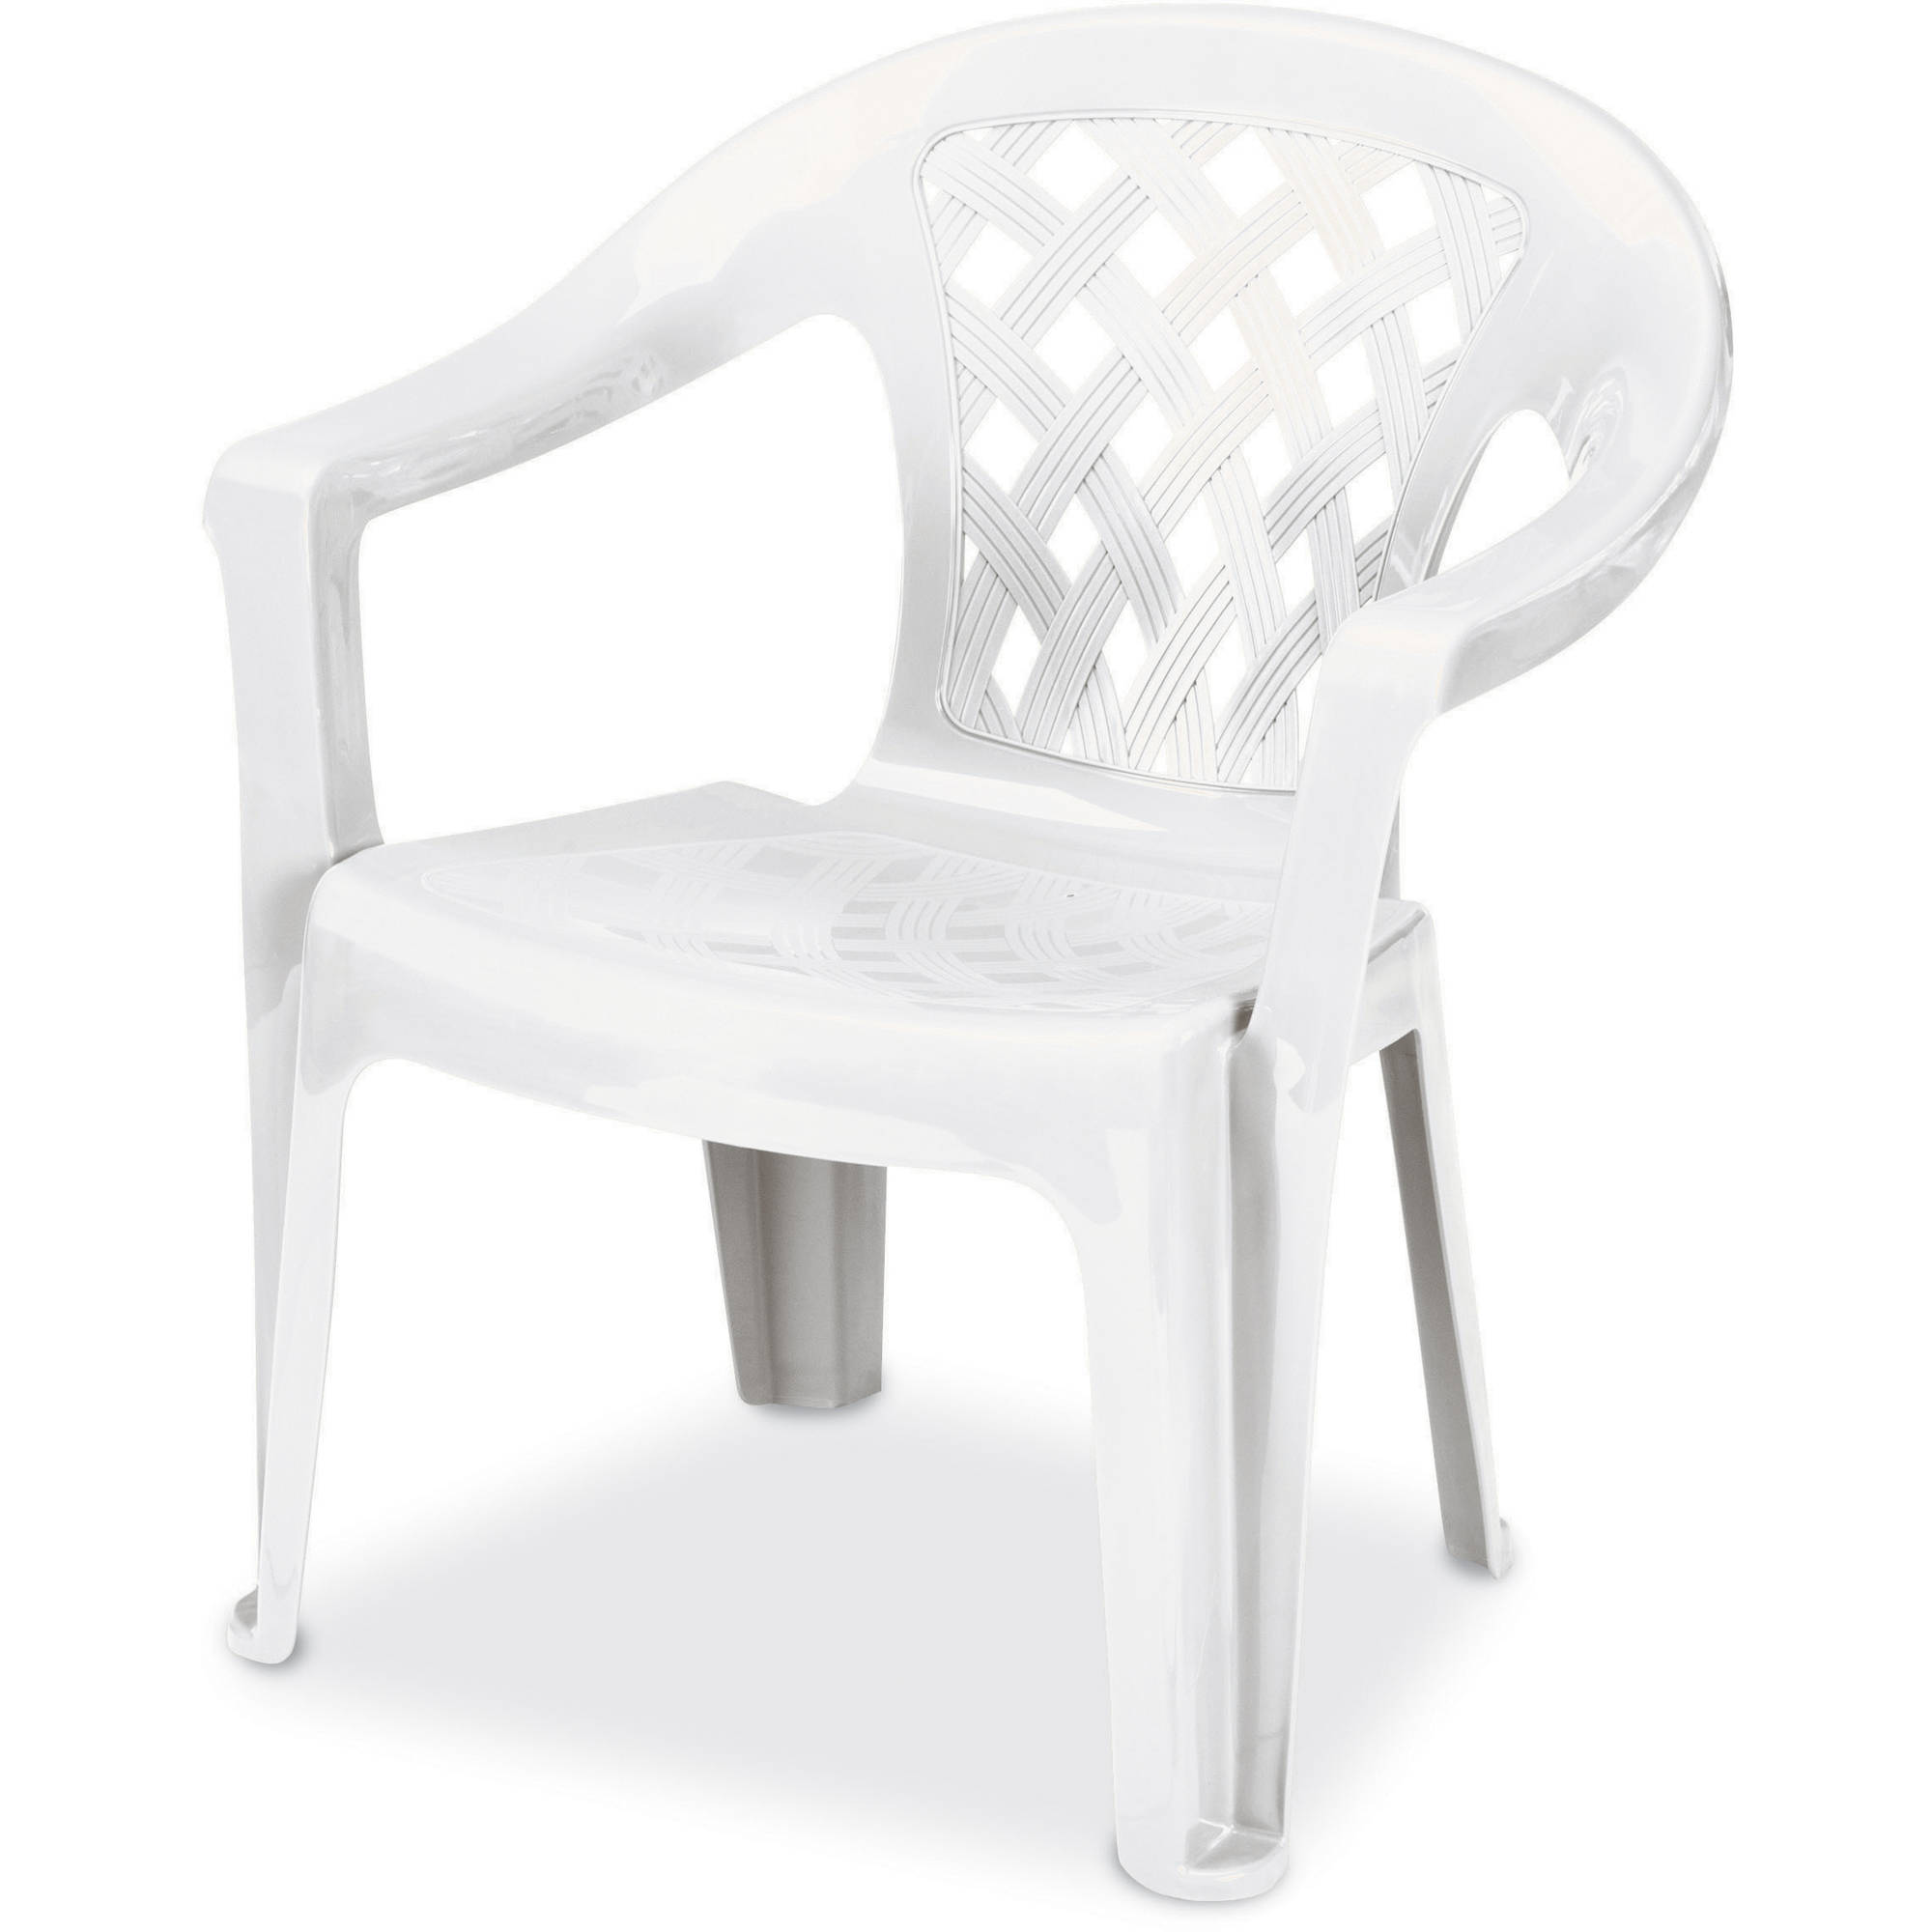 White Resin Patio Chairs us leisure resin big and tall lowback chair, white - walmart